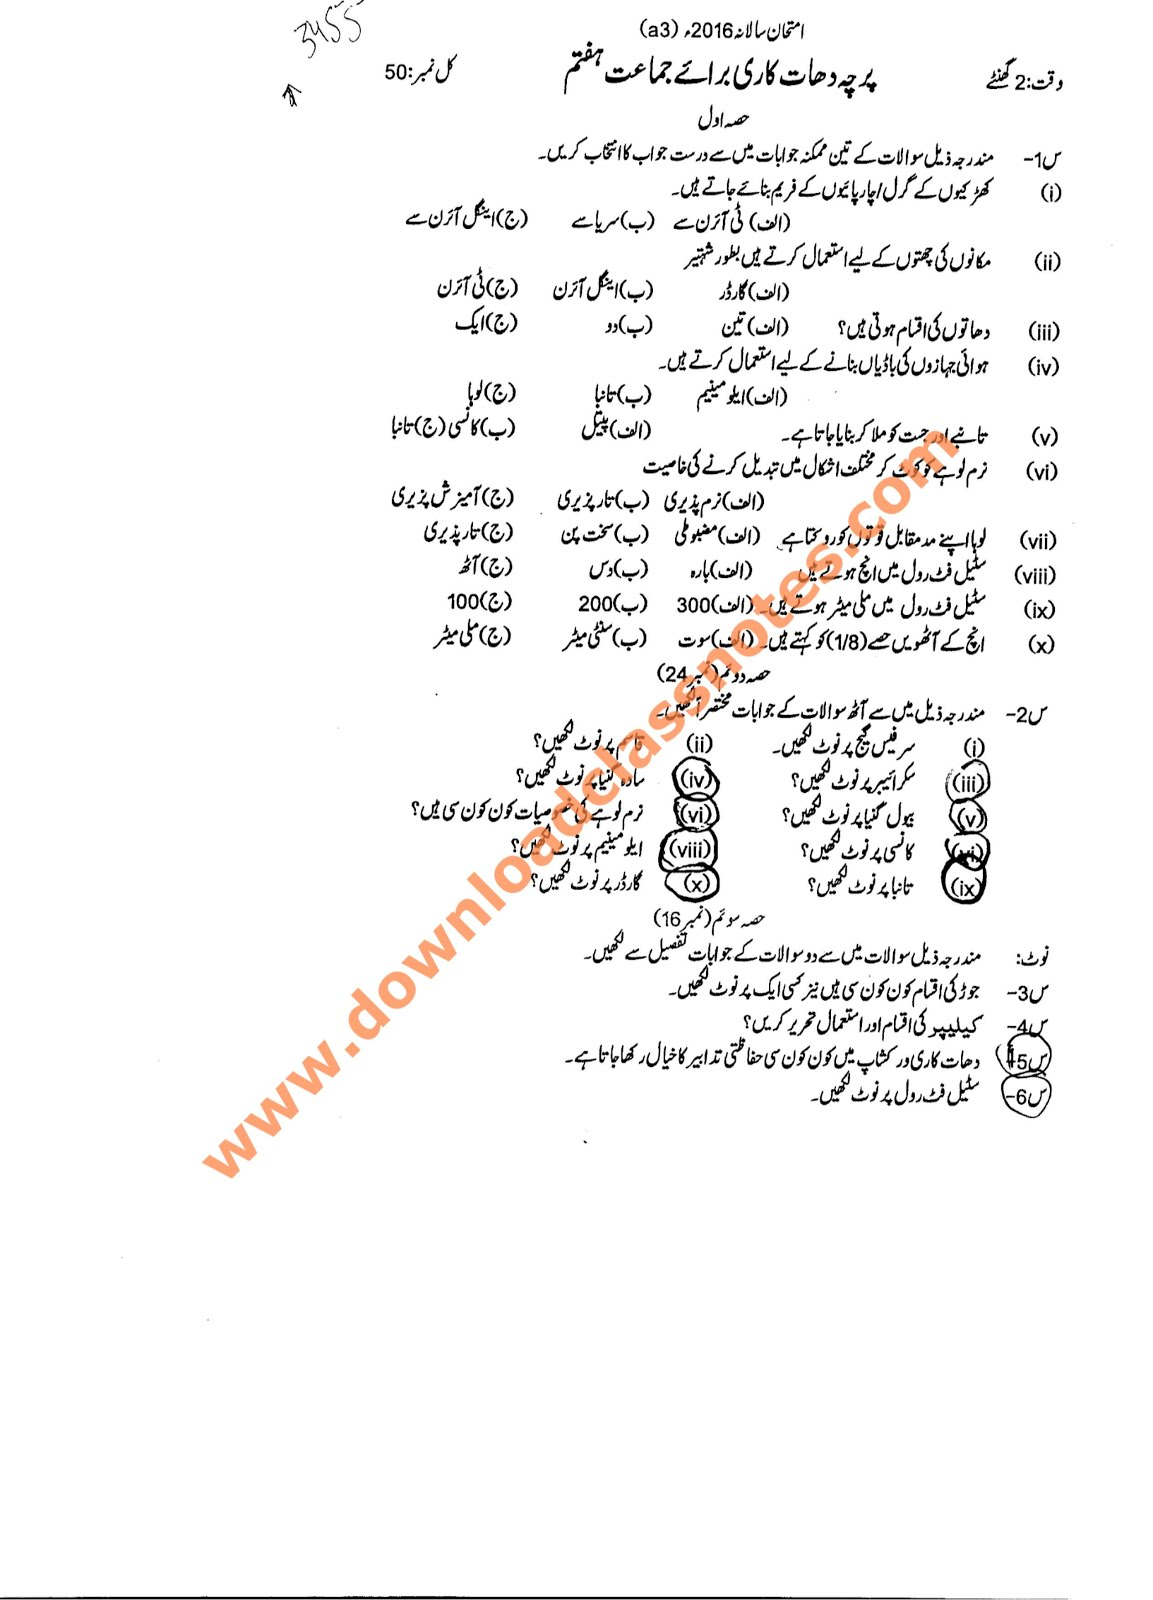 7th Class Old Question Papers (2016) for Islamabad Model